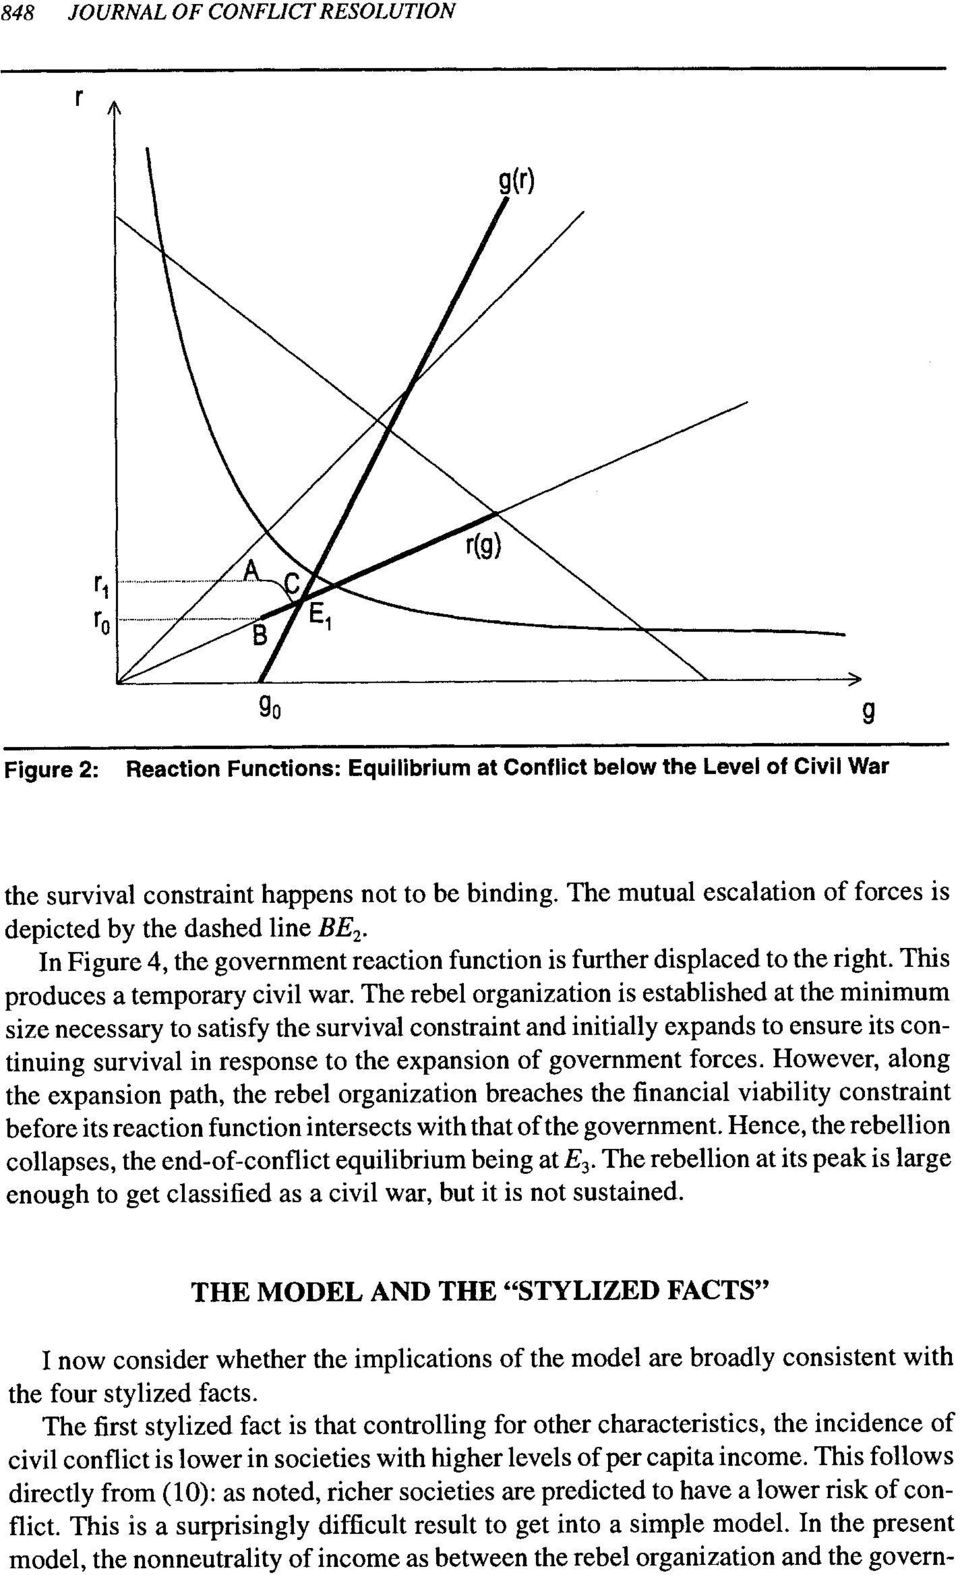 The rebel organization is established at the minimum size necessary to satisfy the survival constraint and initially expands to ensure its continuing survival in response to the expansion of